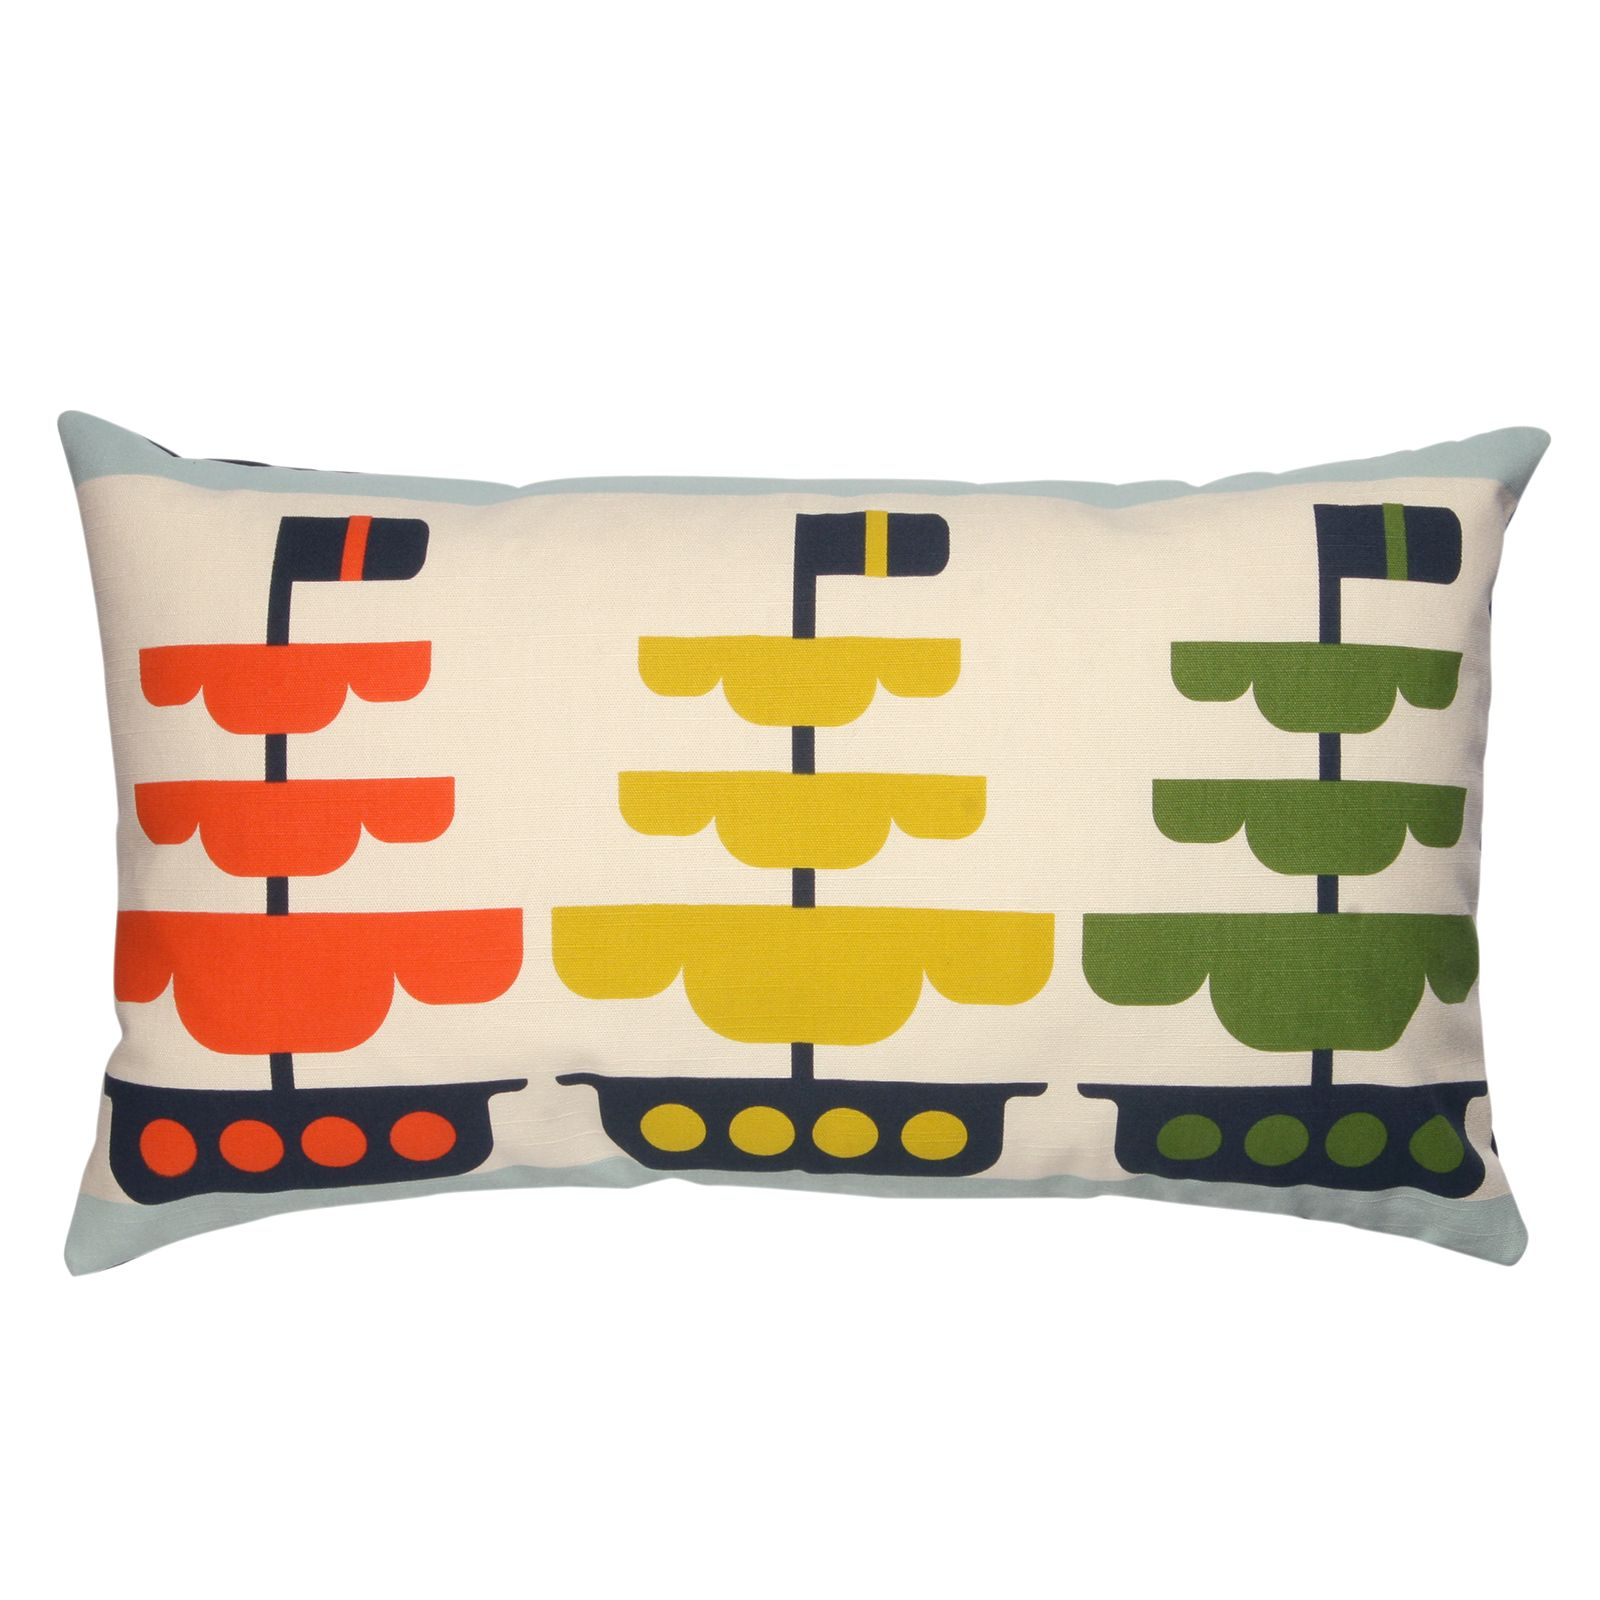 Orla Kiely — Iconic Bags, Clothing, Accessories and Home